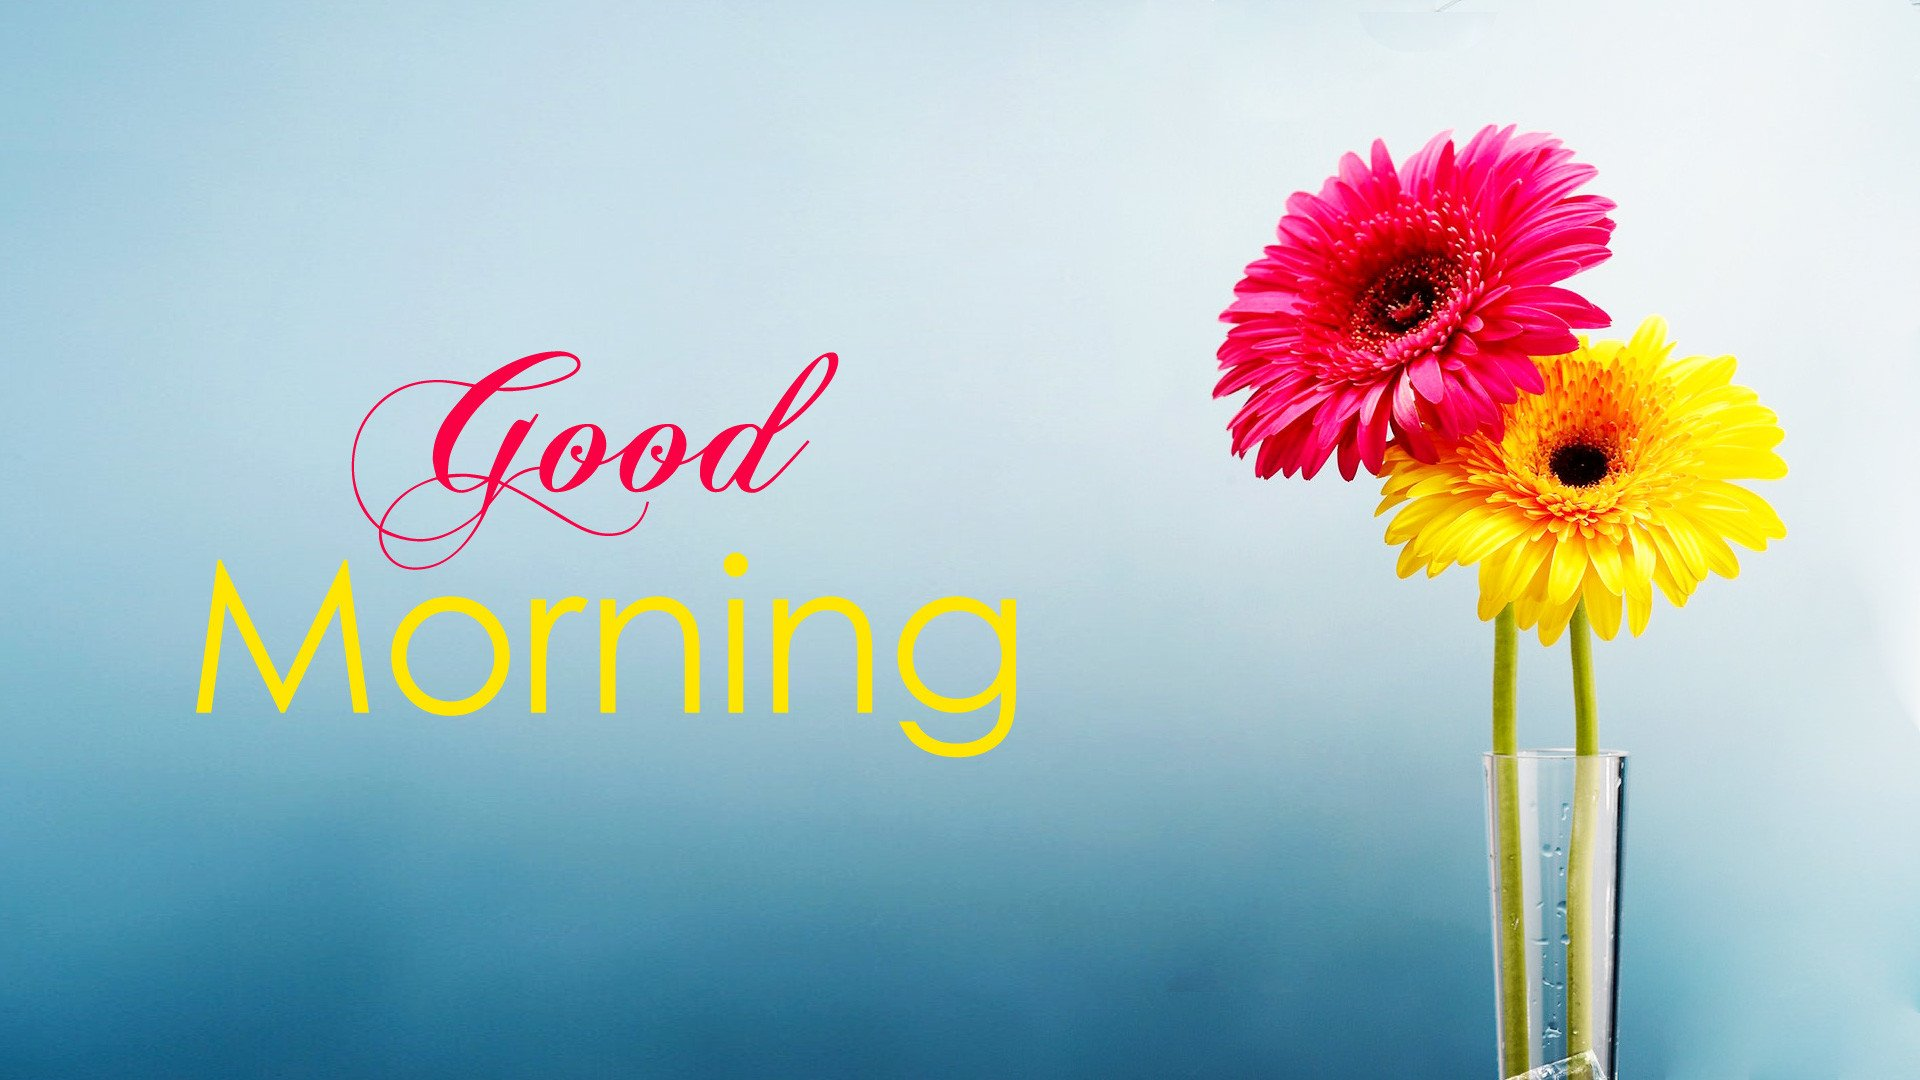 35+ Good Morning Images, Wishes, Pics and Greetings